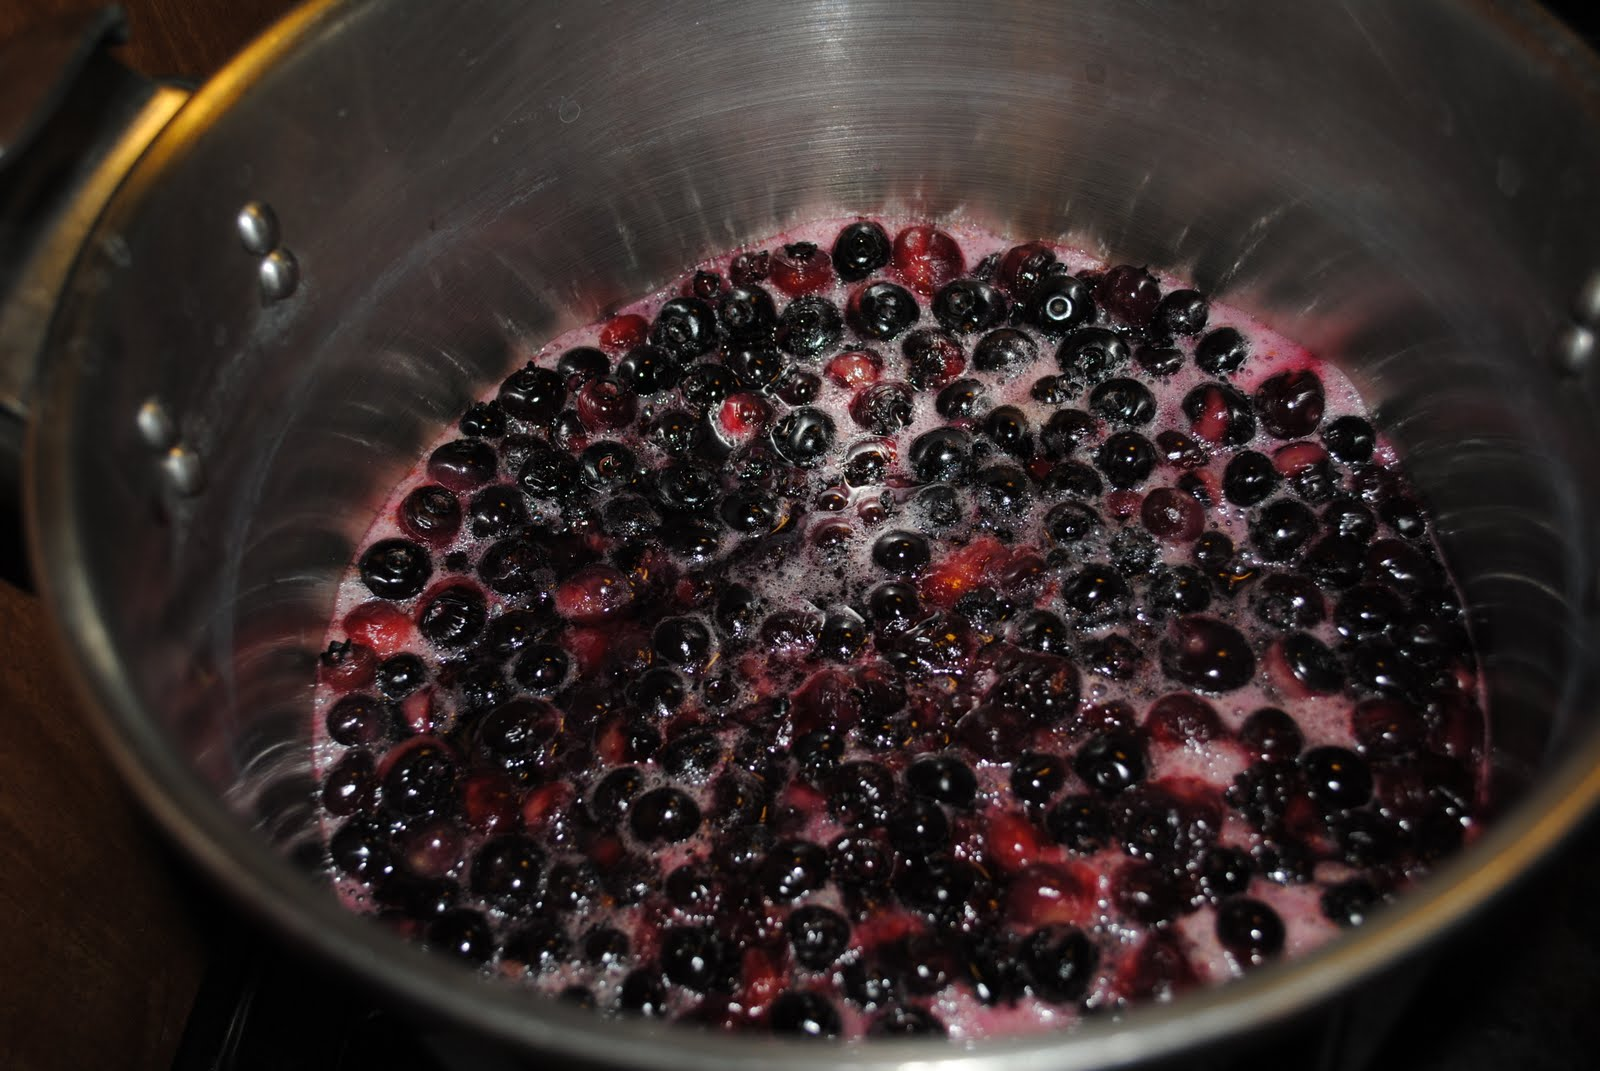 Creative Homesteading: Blueberry Juice Concentrate